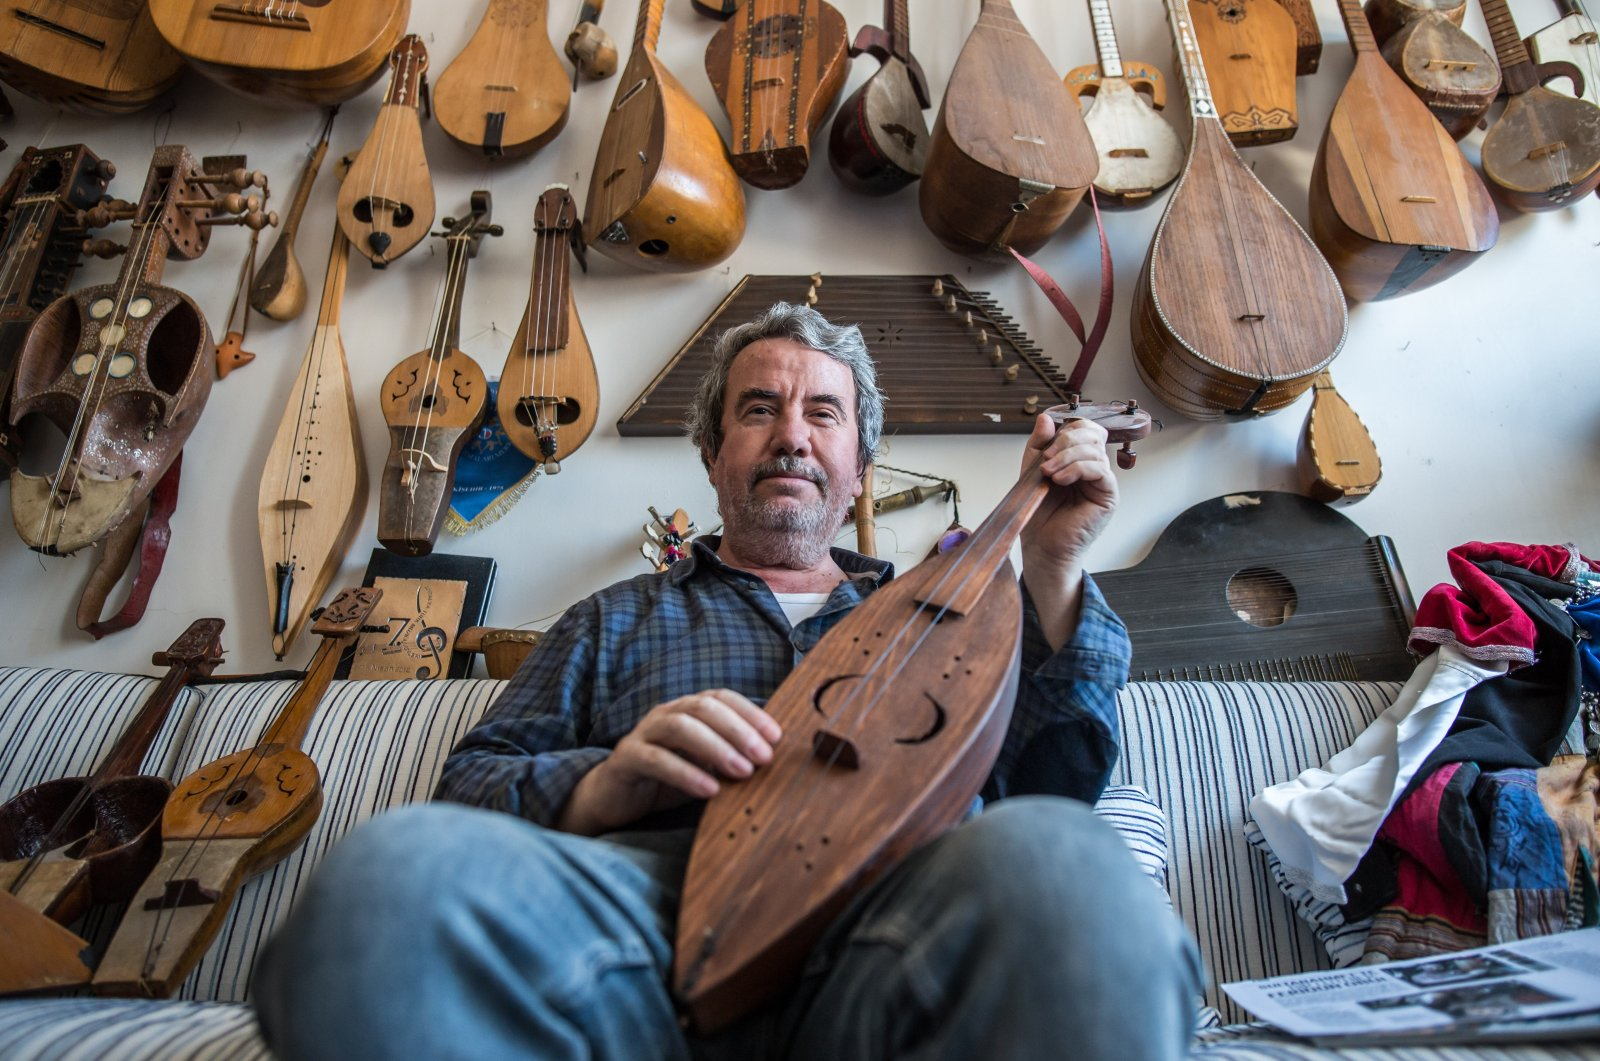 Feridun Obul poses with string instruments he made at his workshop in Sultanahmet Square, Istanbul, Turkey, June 23, 2018. (PHOTO BY MURAT ŞENGÜL)